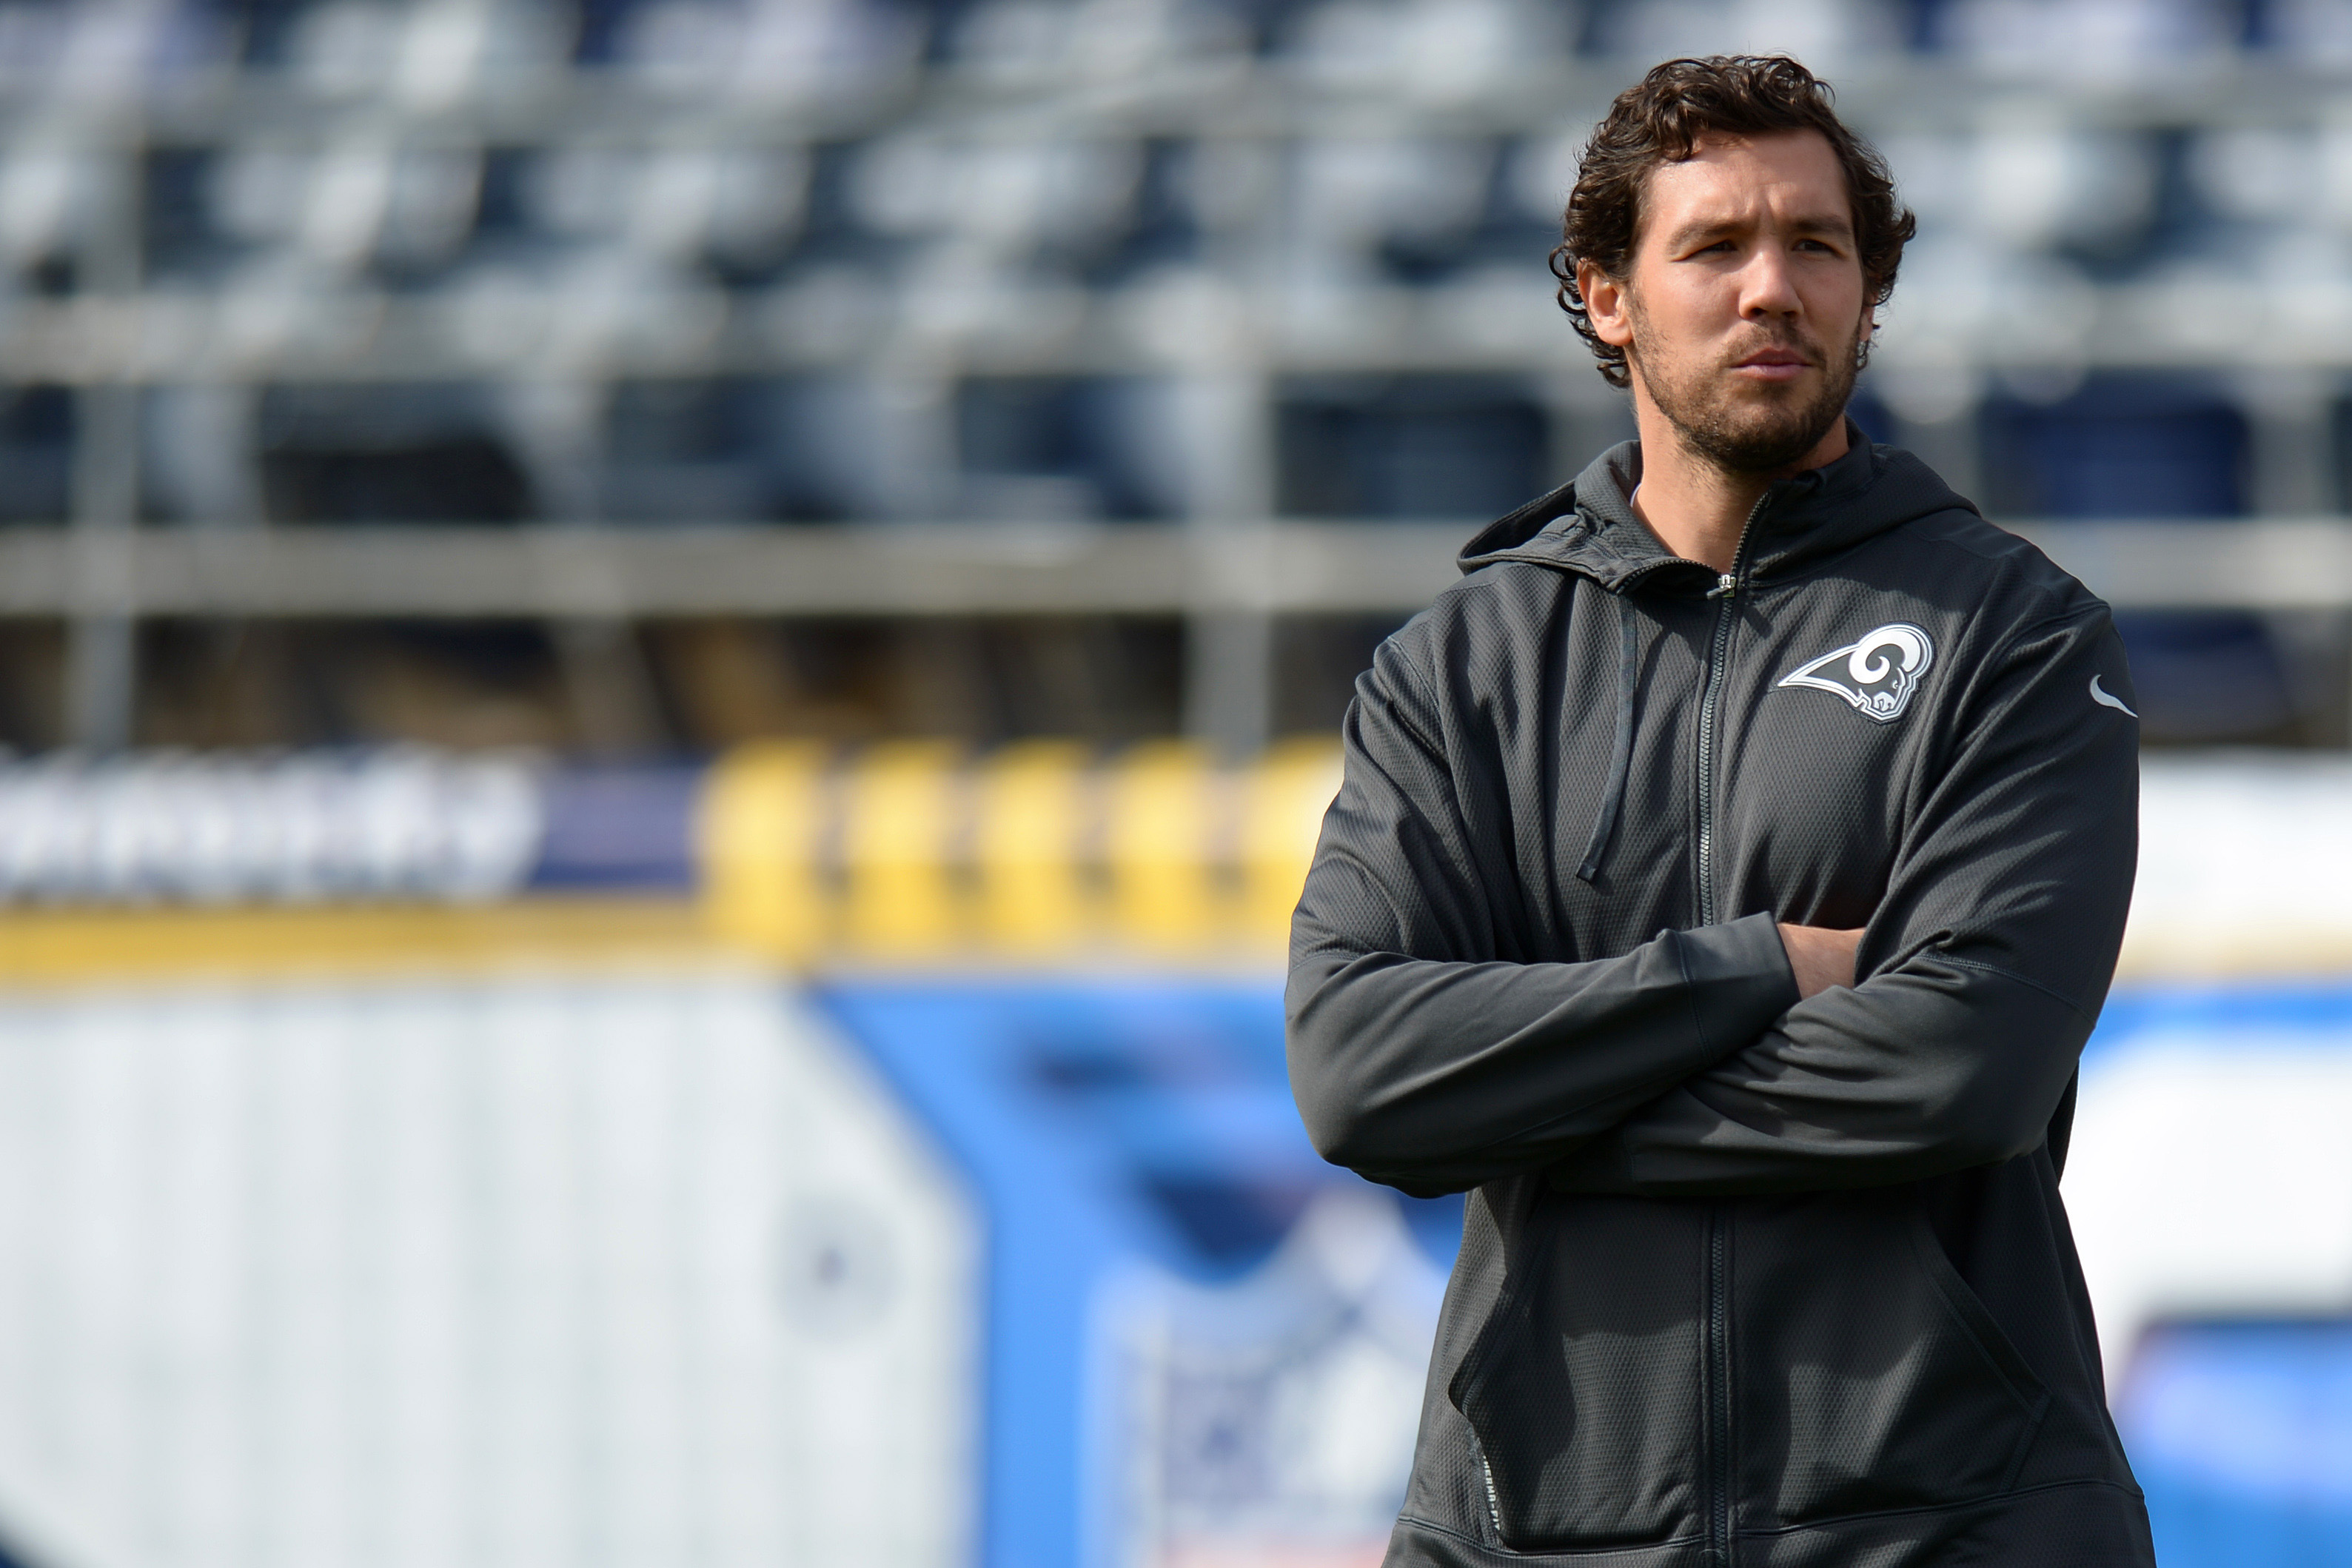 Can the Rams still build around the injured Sam Bradford, or do they have to move on?